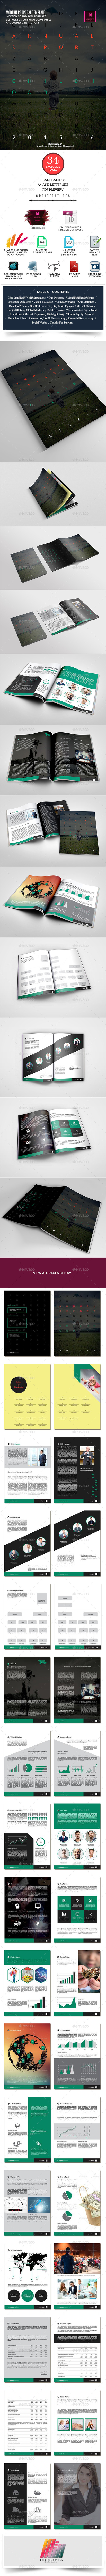 GraphicRiver Childhood Annual Report Template for Business 10550817